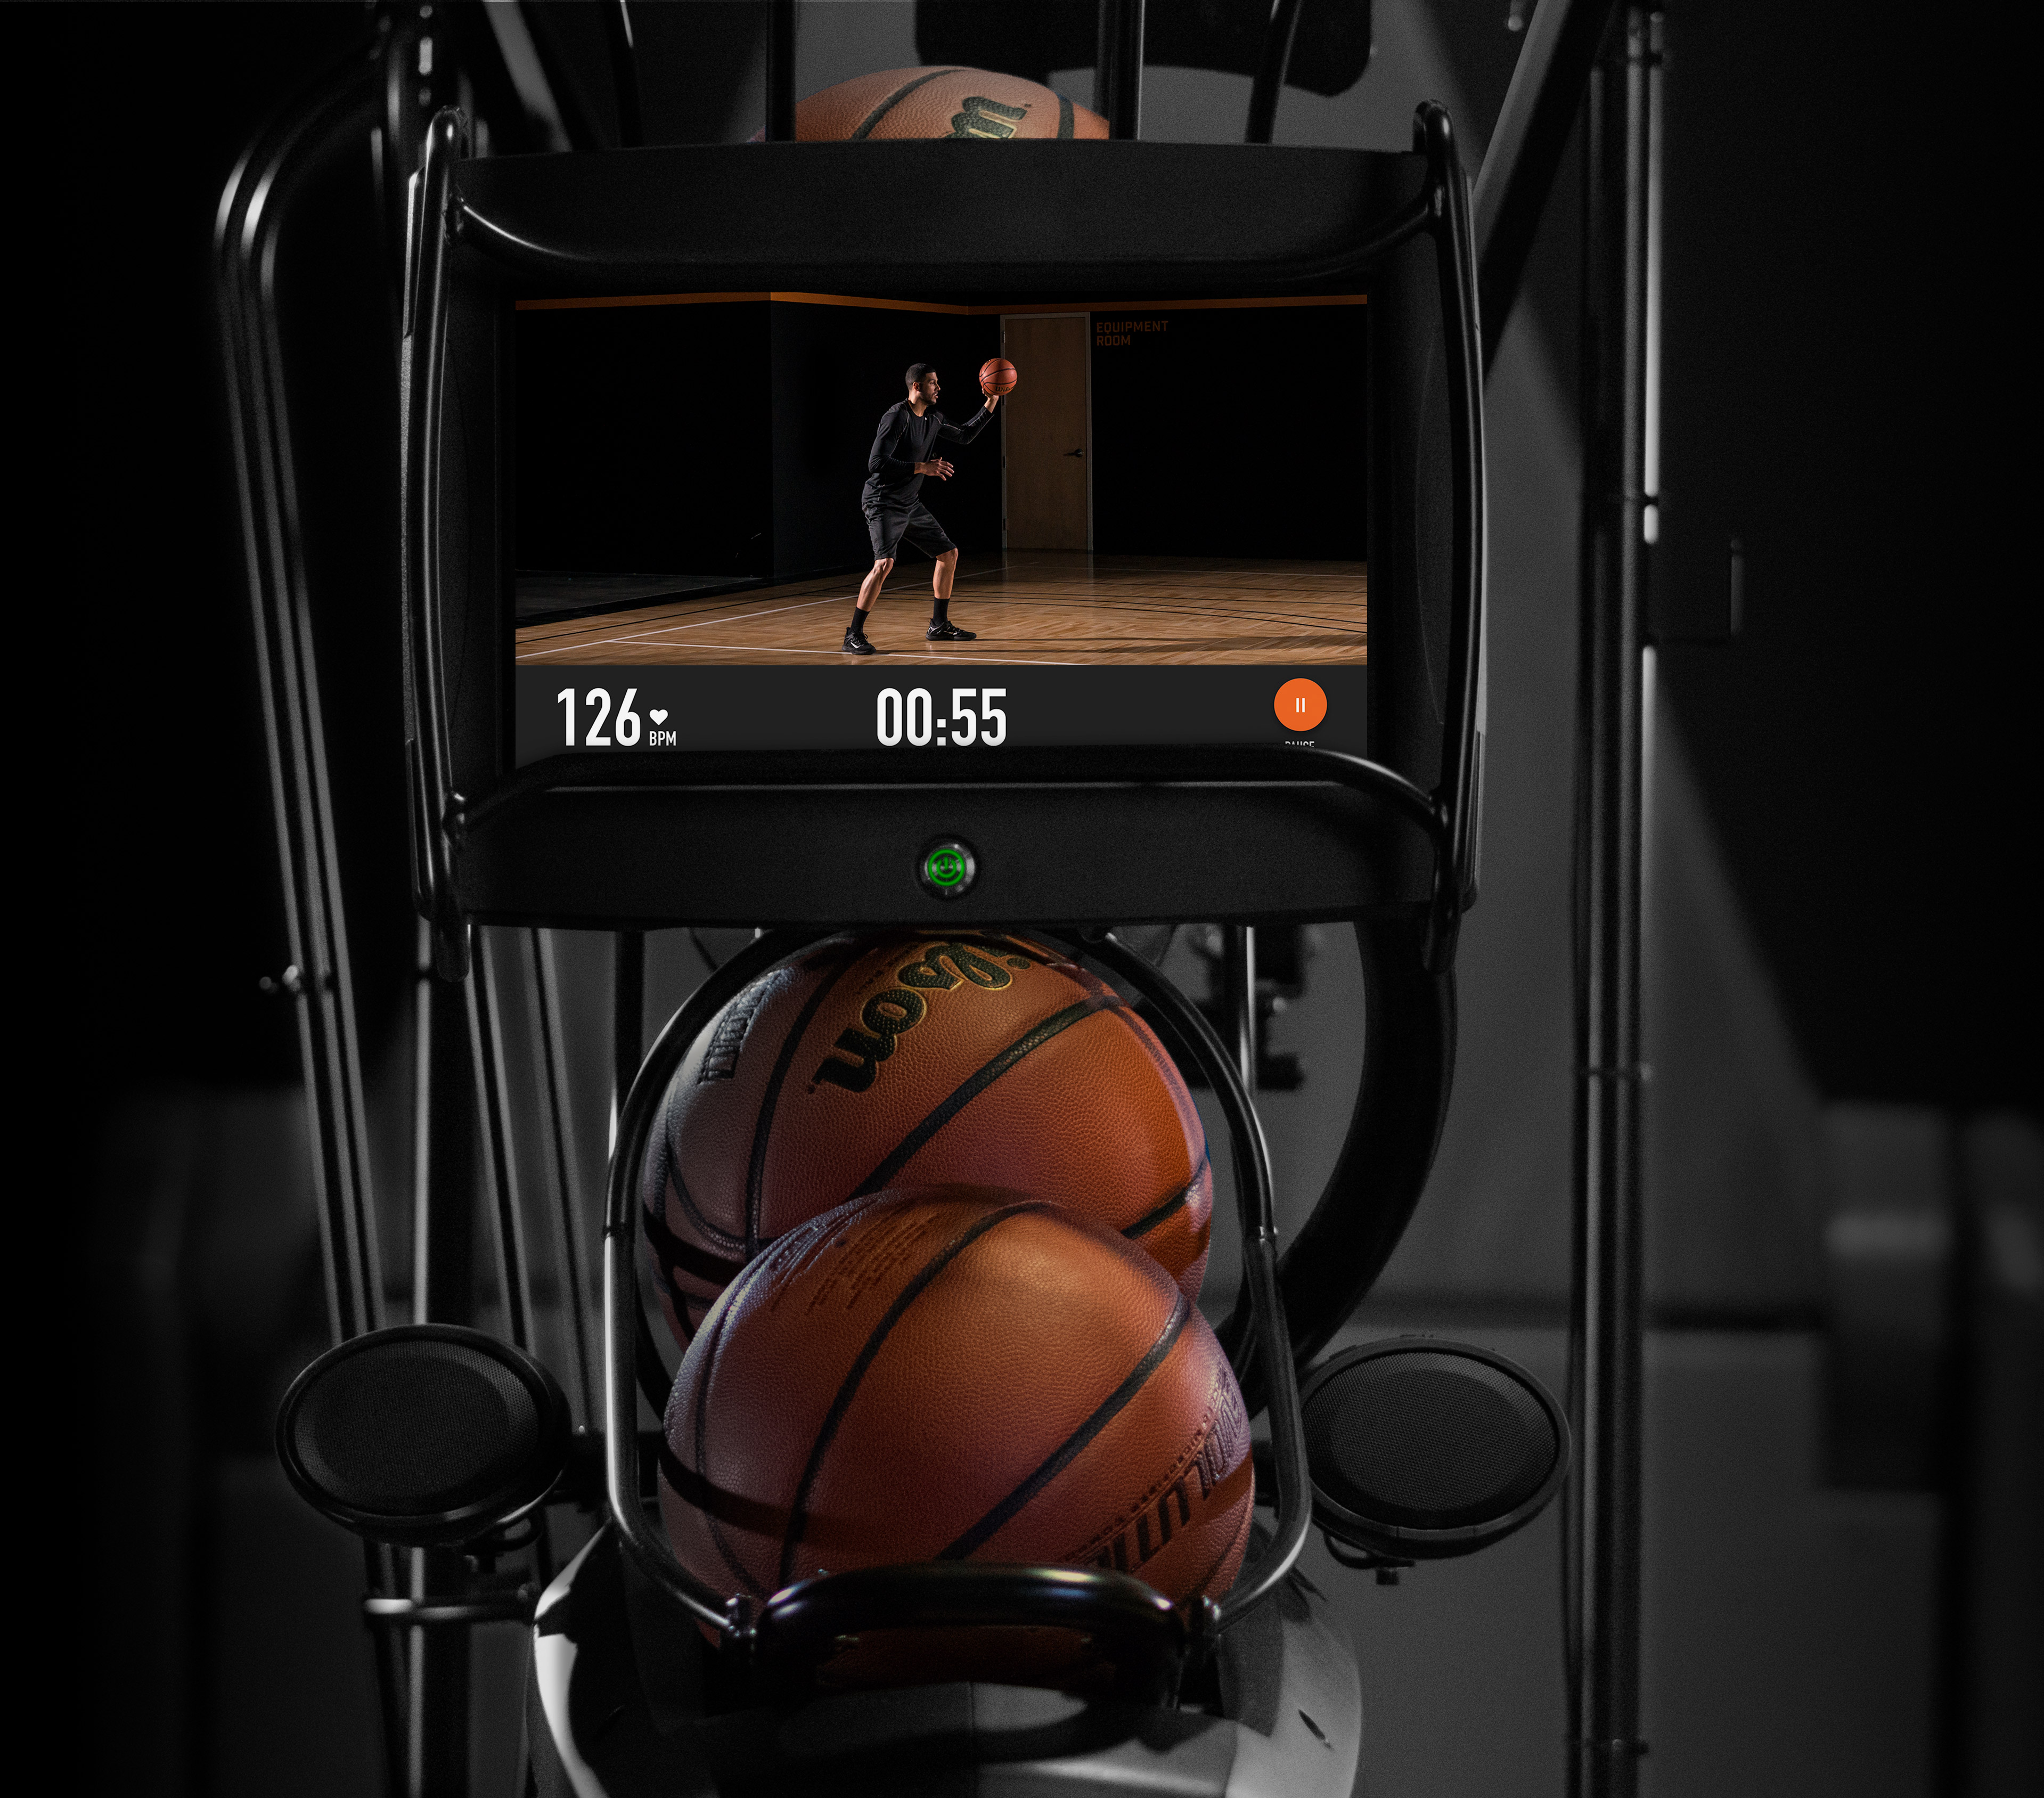 Dr. Dish CT basketball shooting machine with on-demand training video